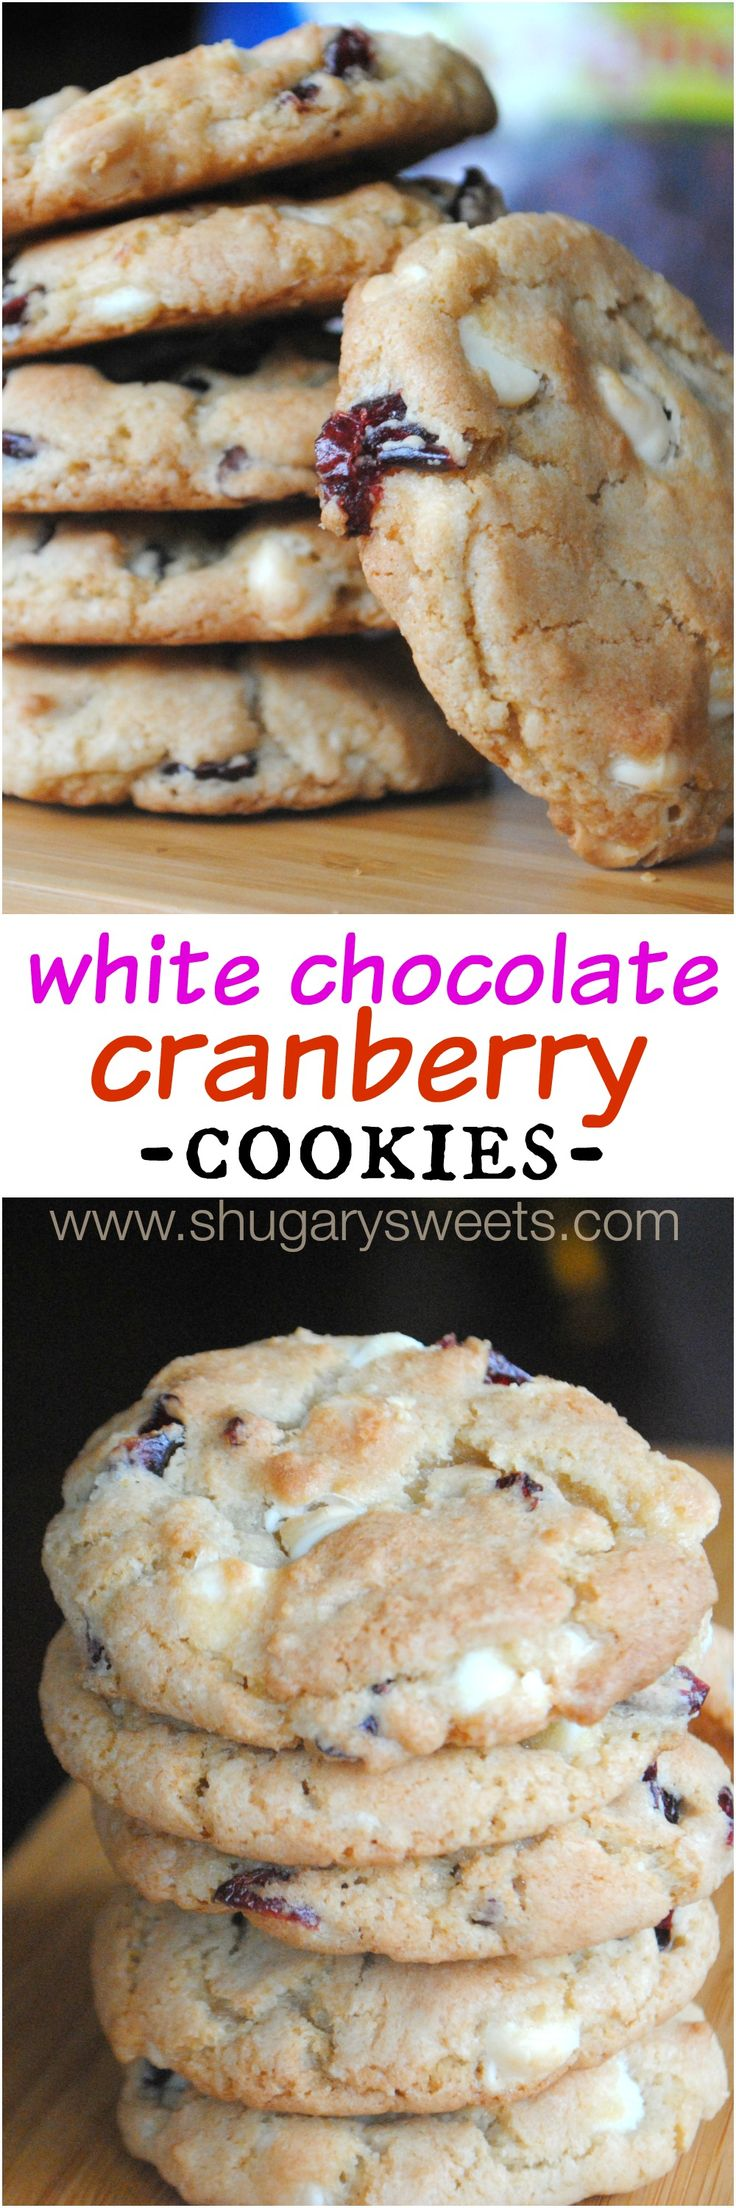 I had never eaten a white chocolate with cranberry cookie. Ever. So don't judge me if these are not what you were expecting. I took my basic cookie dough recipe and made them festive.   And in the process I fell in love. Why didn't anyone ever tell me how GOOD these cookies taste? What …